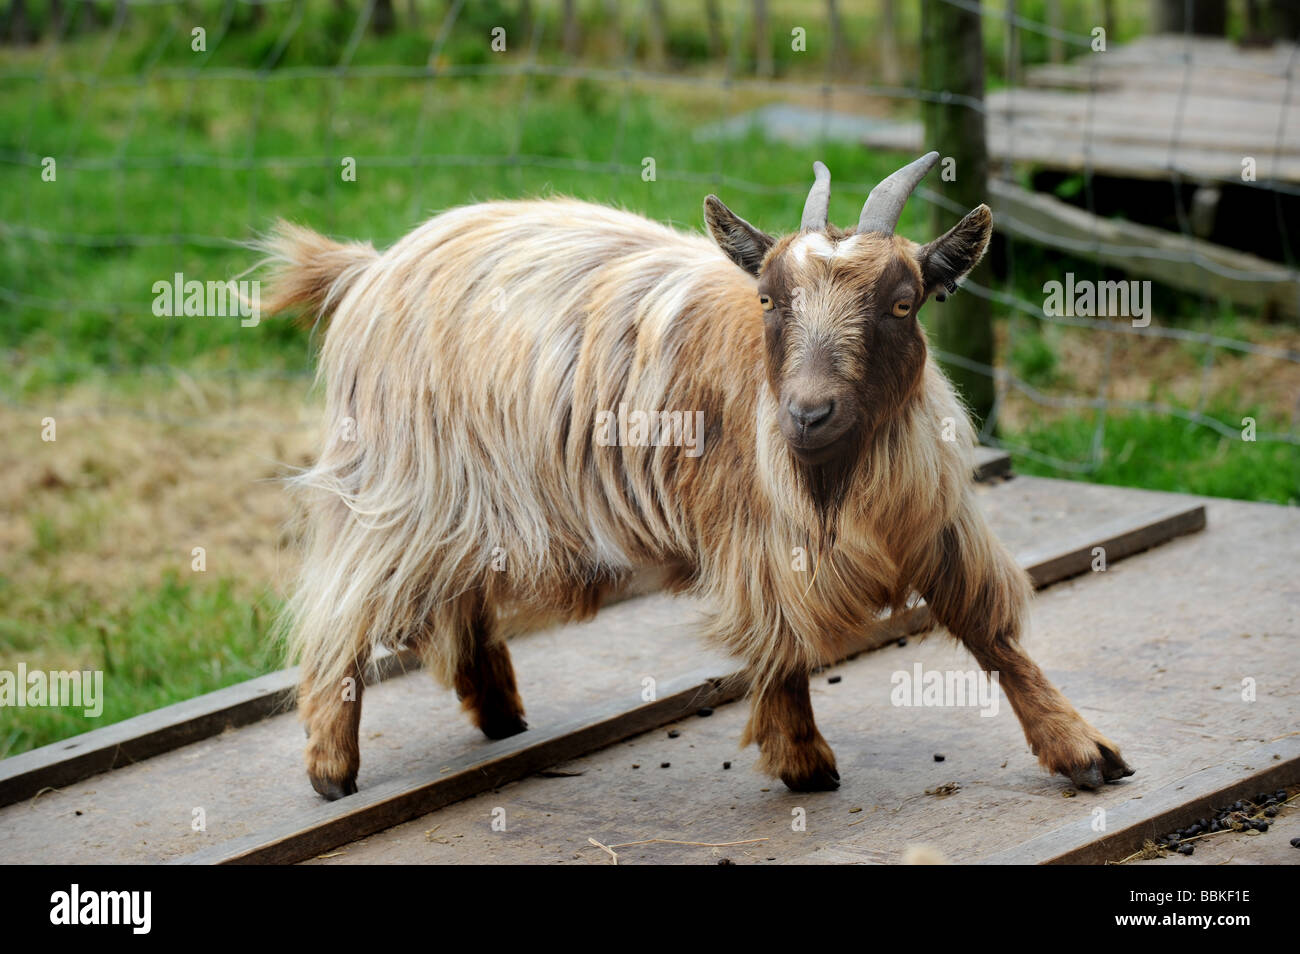 A pygmy goat on a farm in sussex - Stock Image